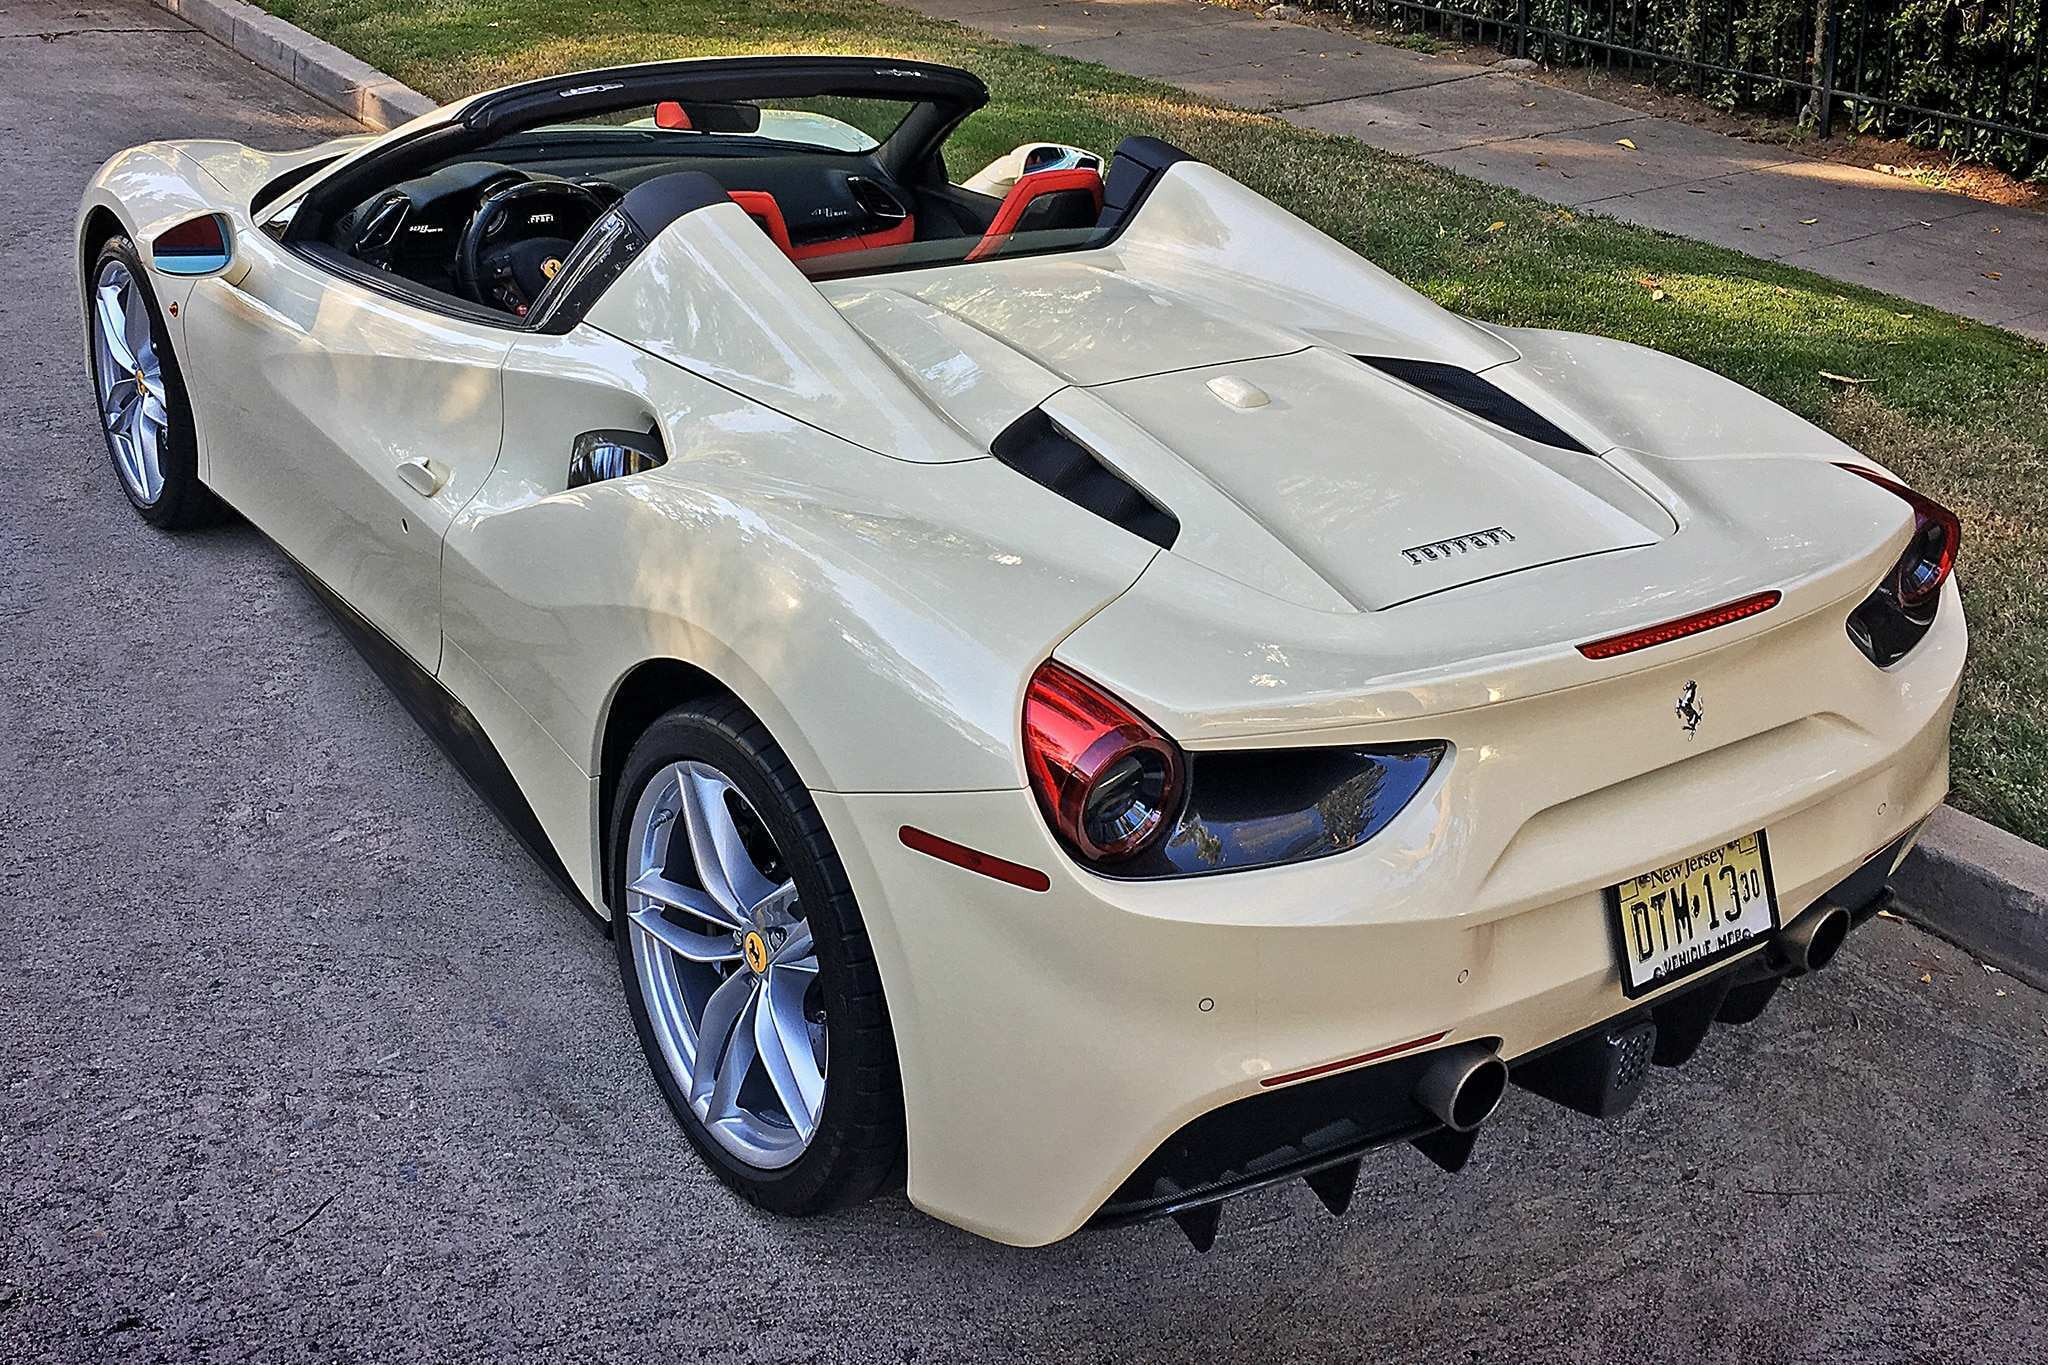 14 Concept of 2020 Ferrari 488 Spider For Sale Concept for 2020 Ferrari 488 Spider For Sale